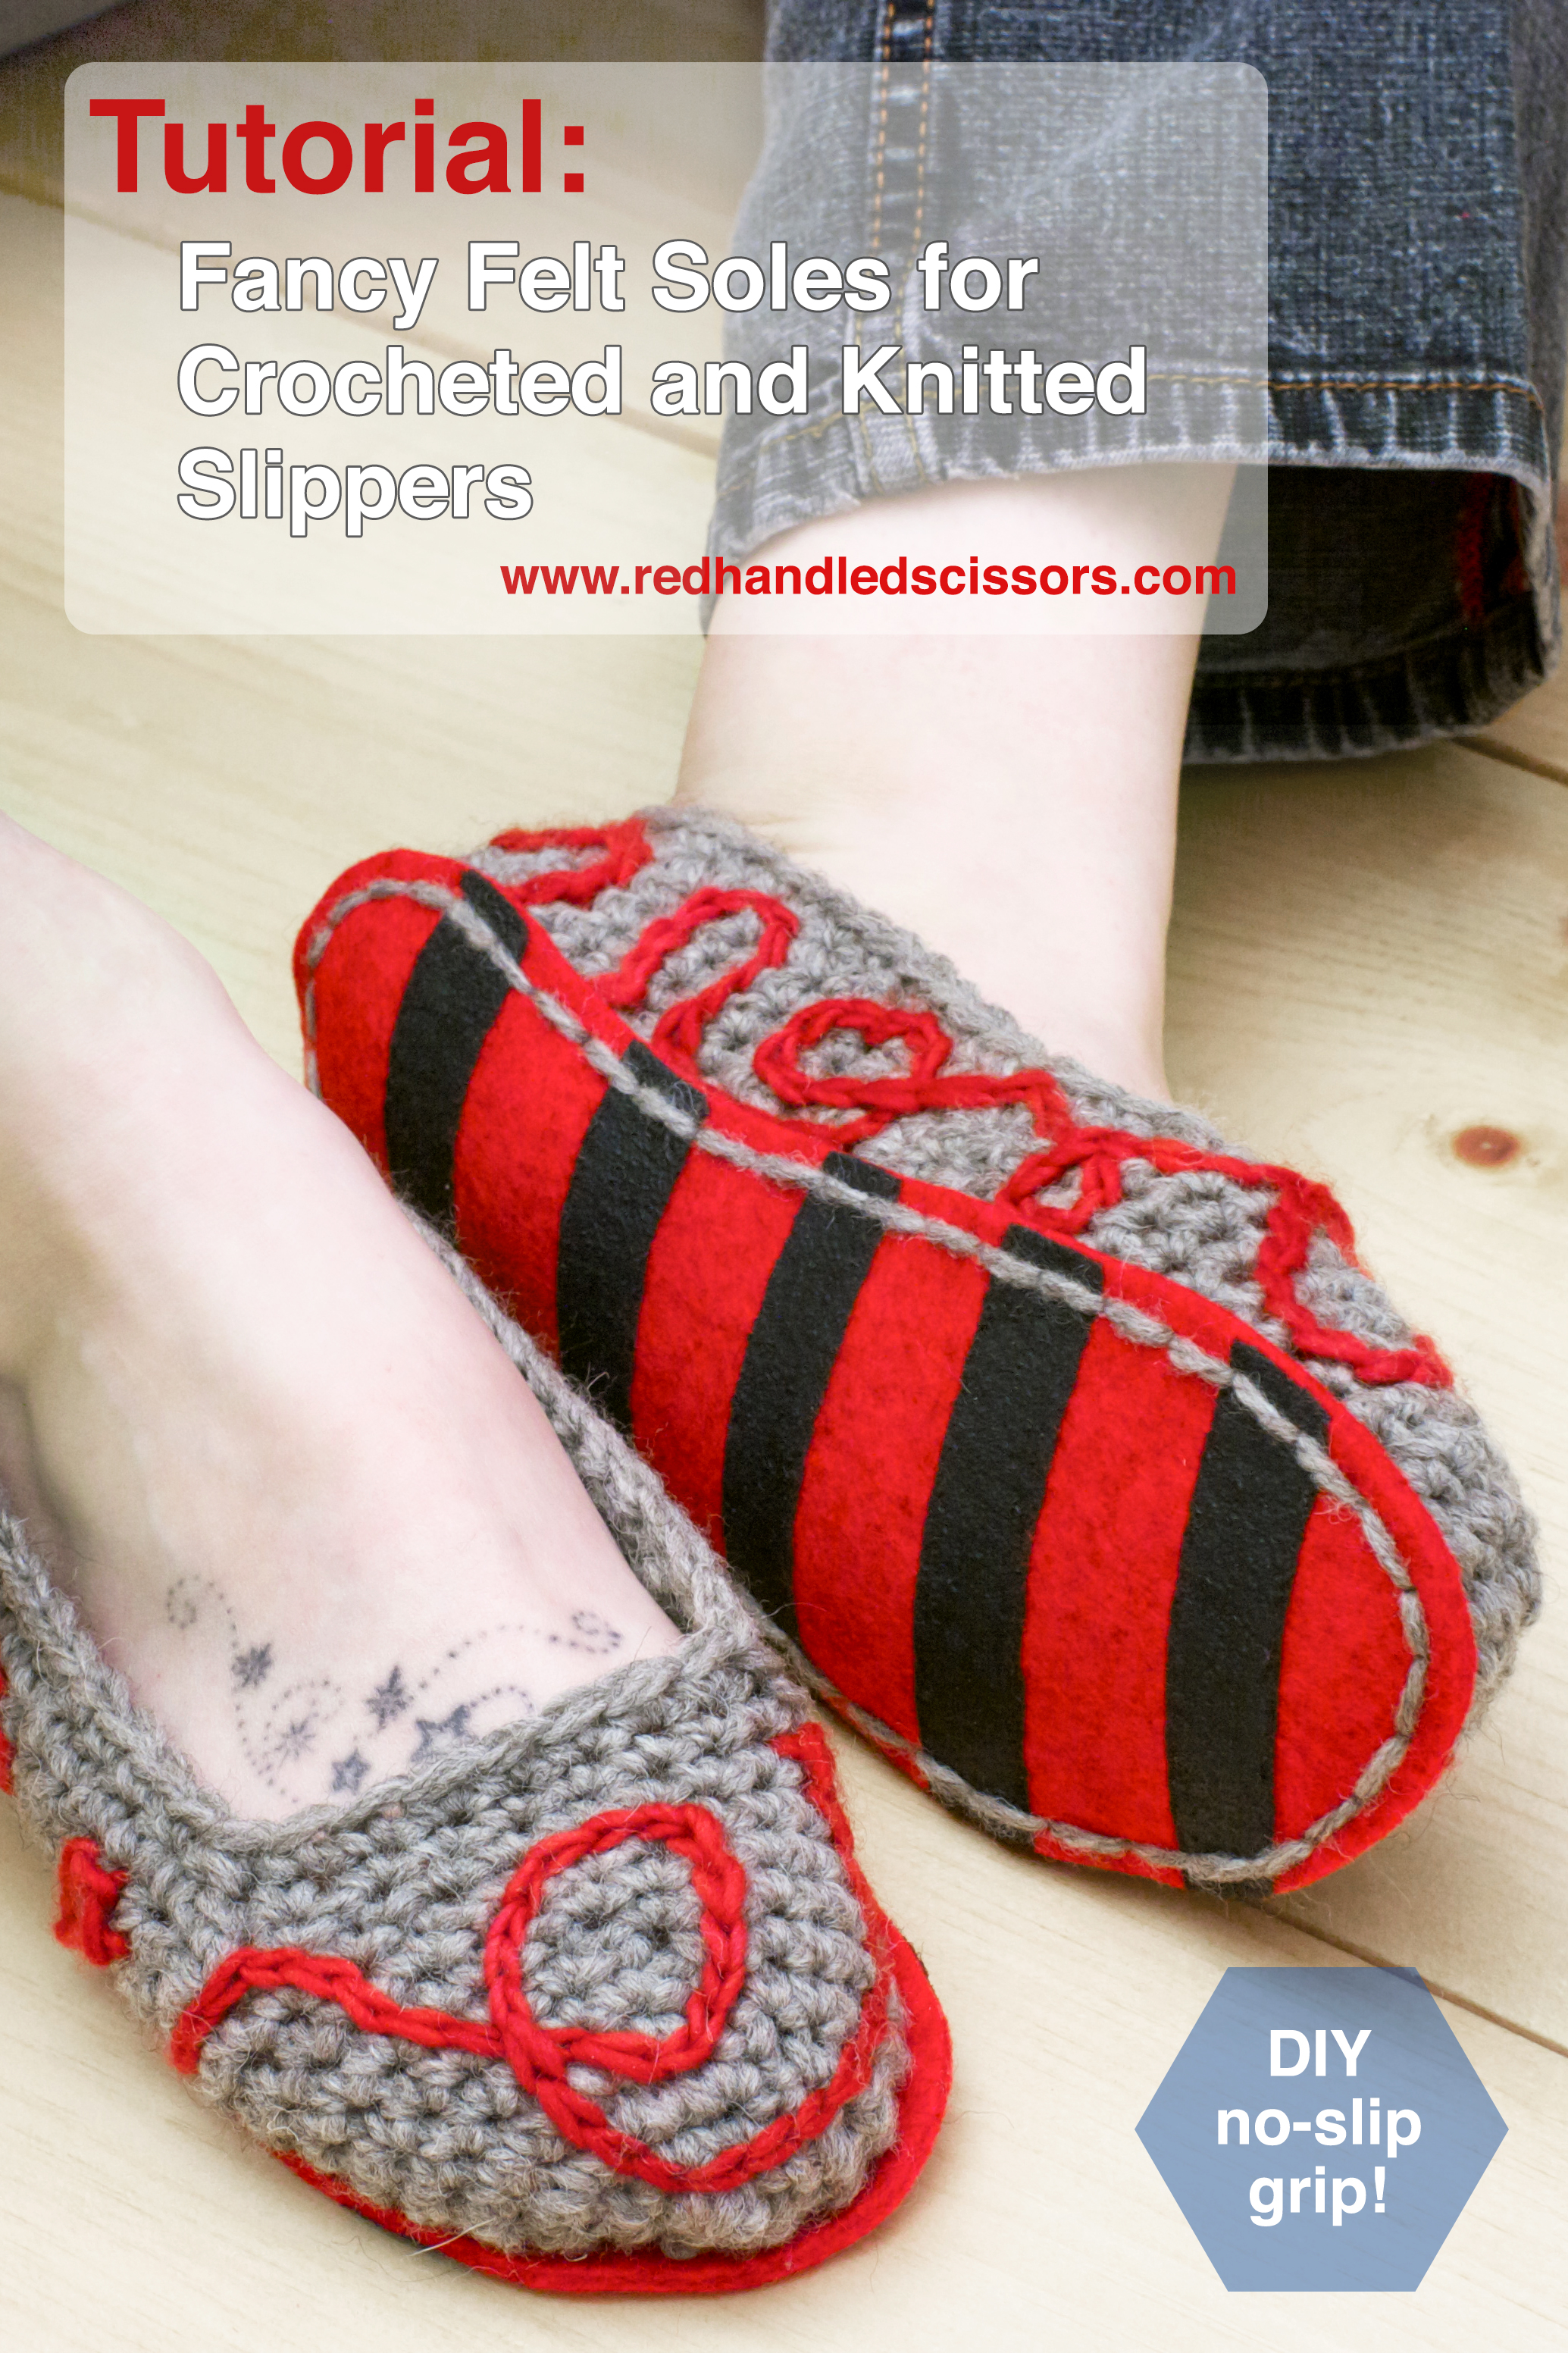 cbcabceffd089 Tutorial: Fancy Felt Soles for Crocheted Slippers | Red-Handled Scissors